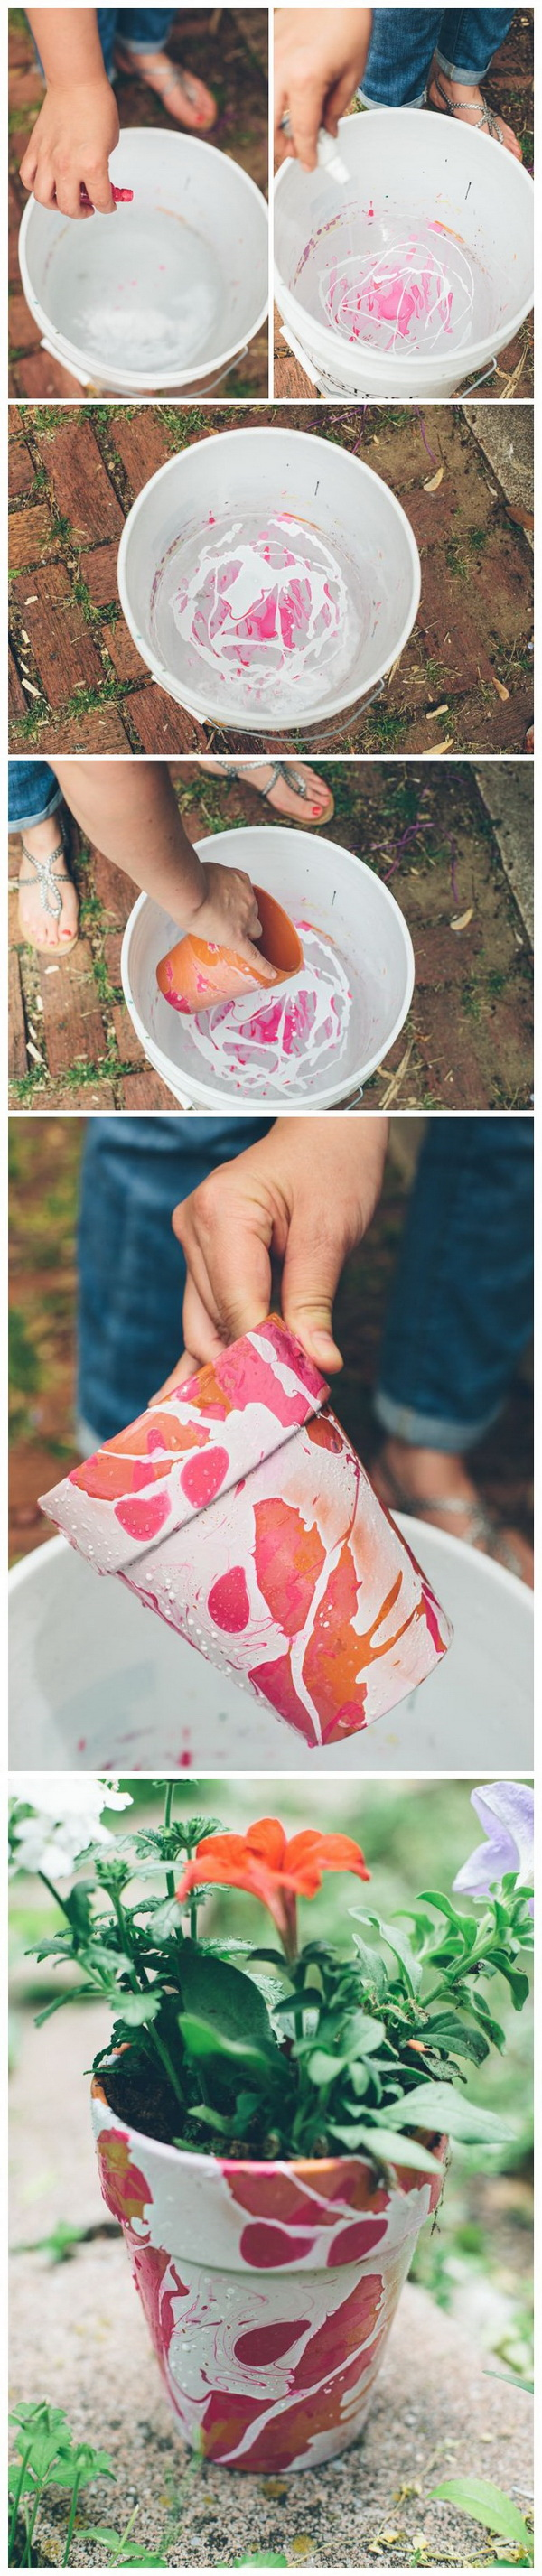 DIY Nail Polish Marbled Planters.